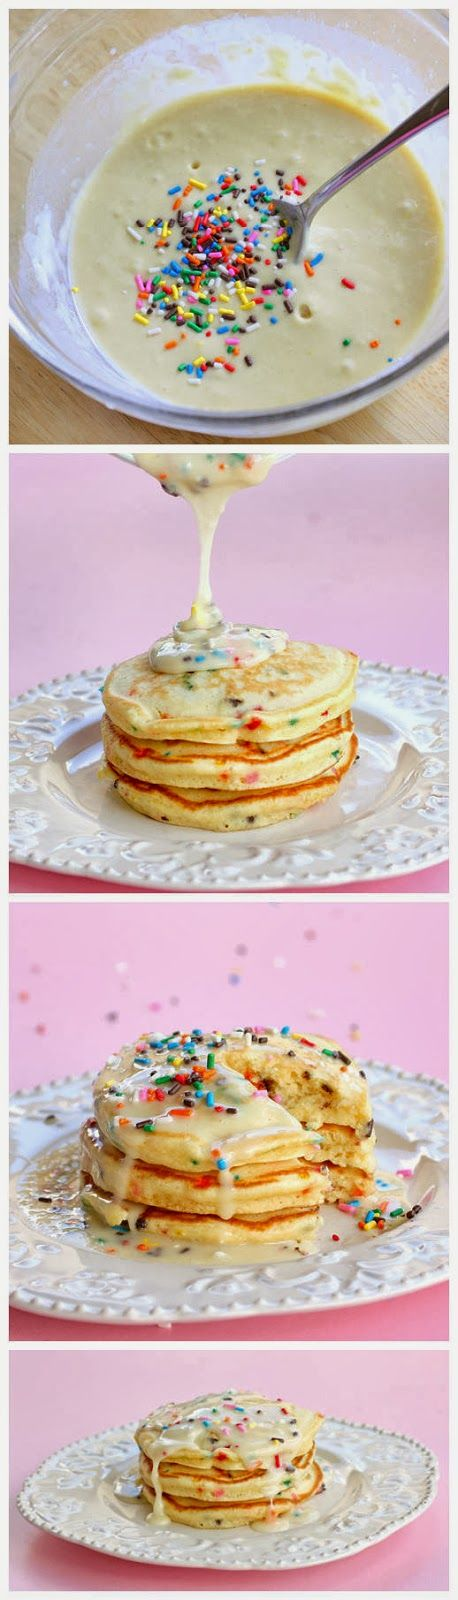 Best of Recipe: Cake Batter Pancakes I use Bisquick or ready made pancake batter...yummmm!